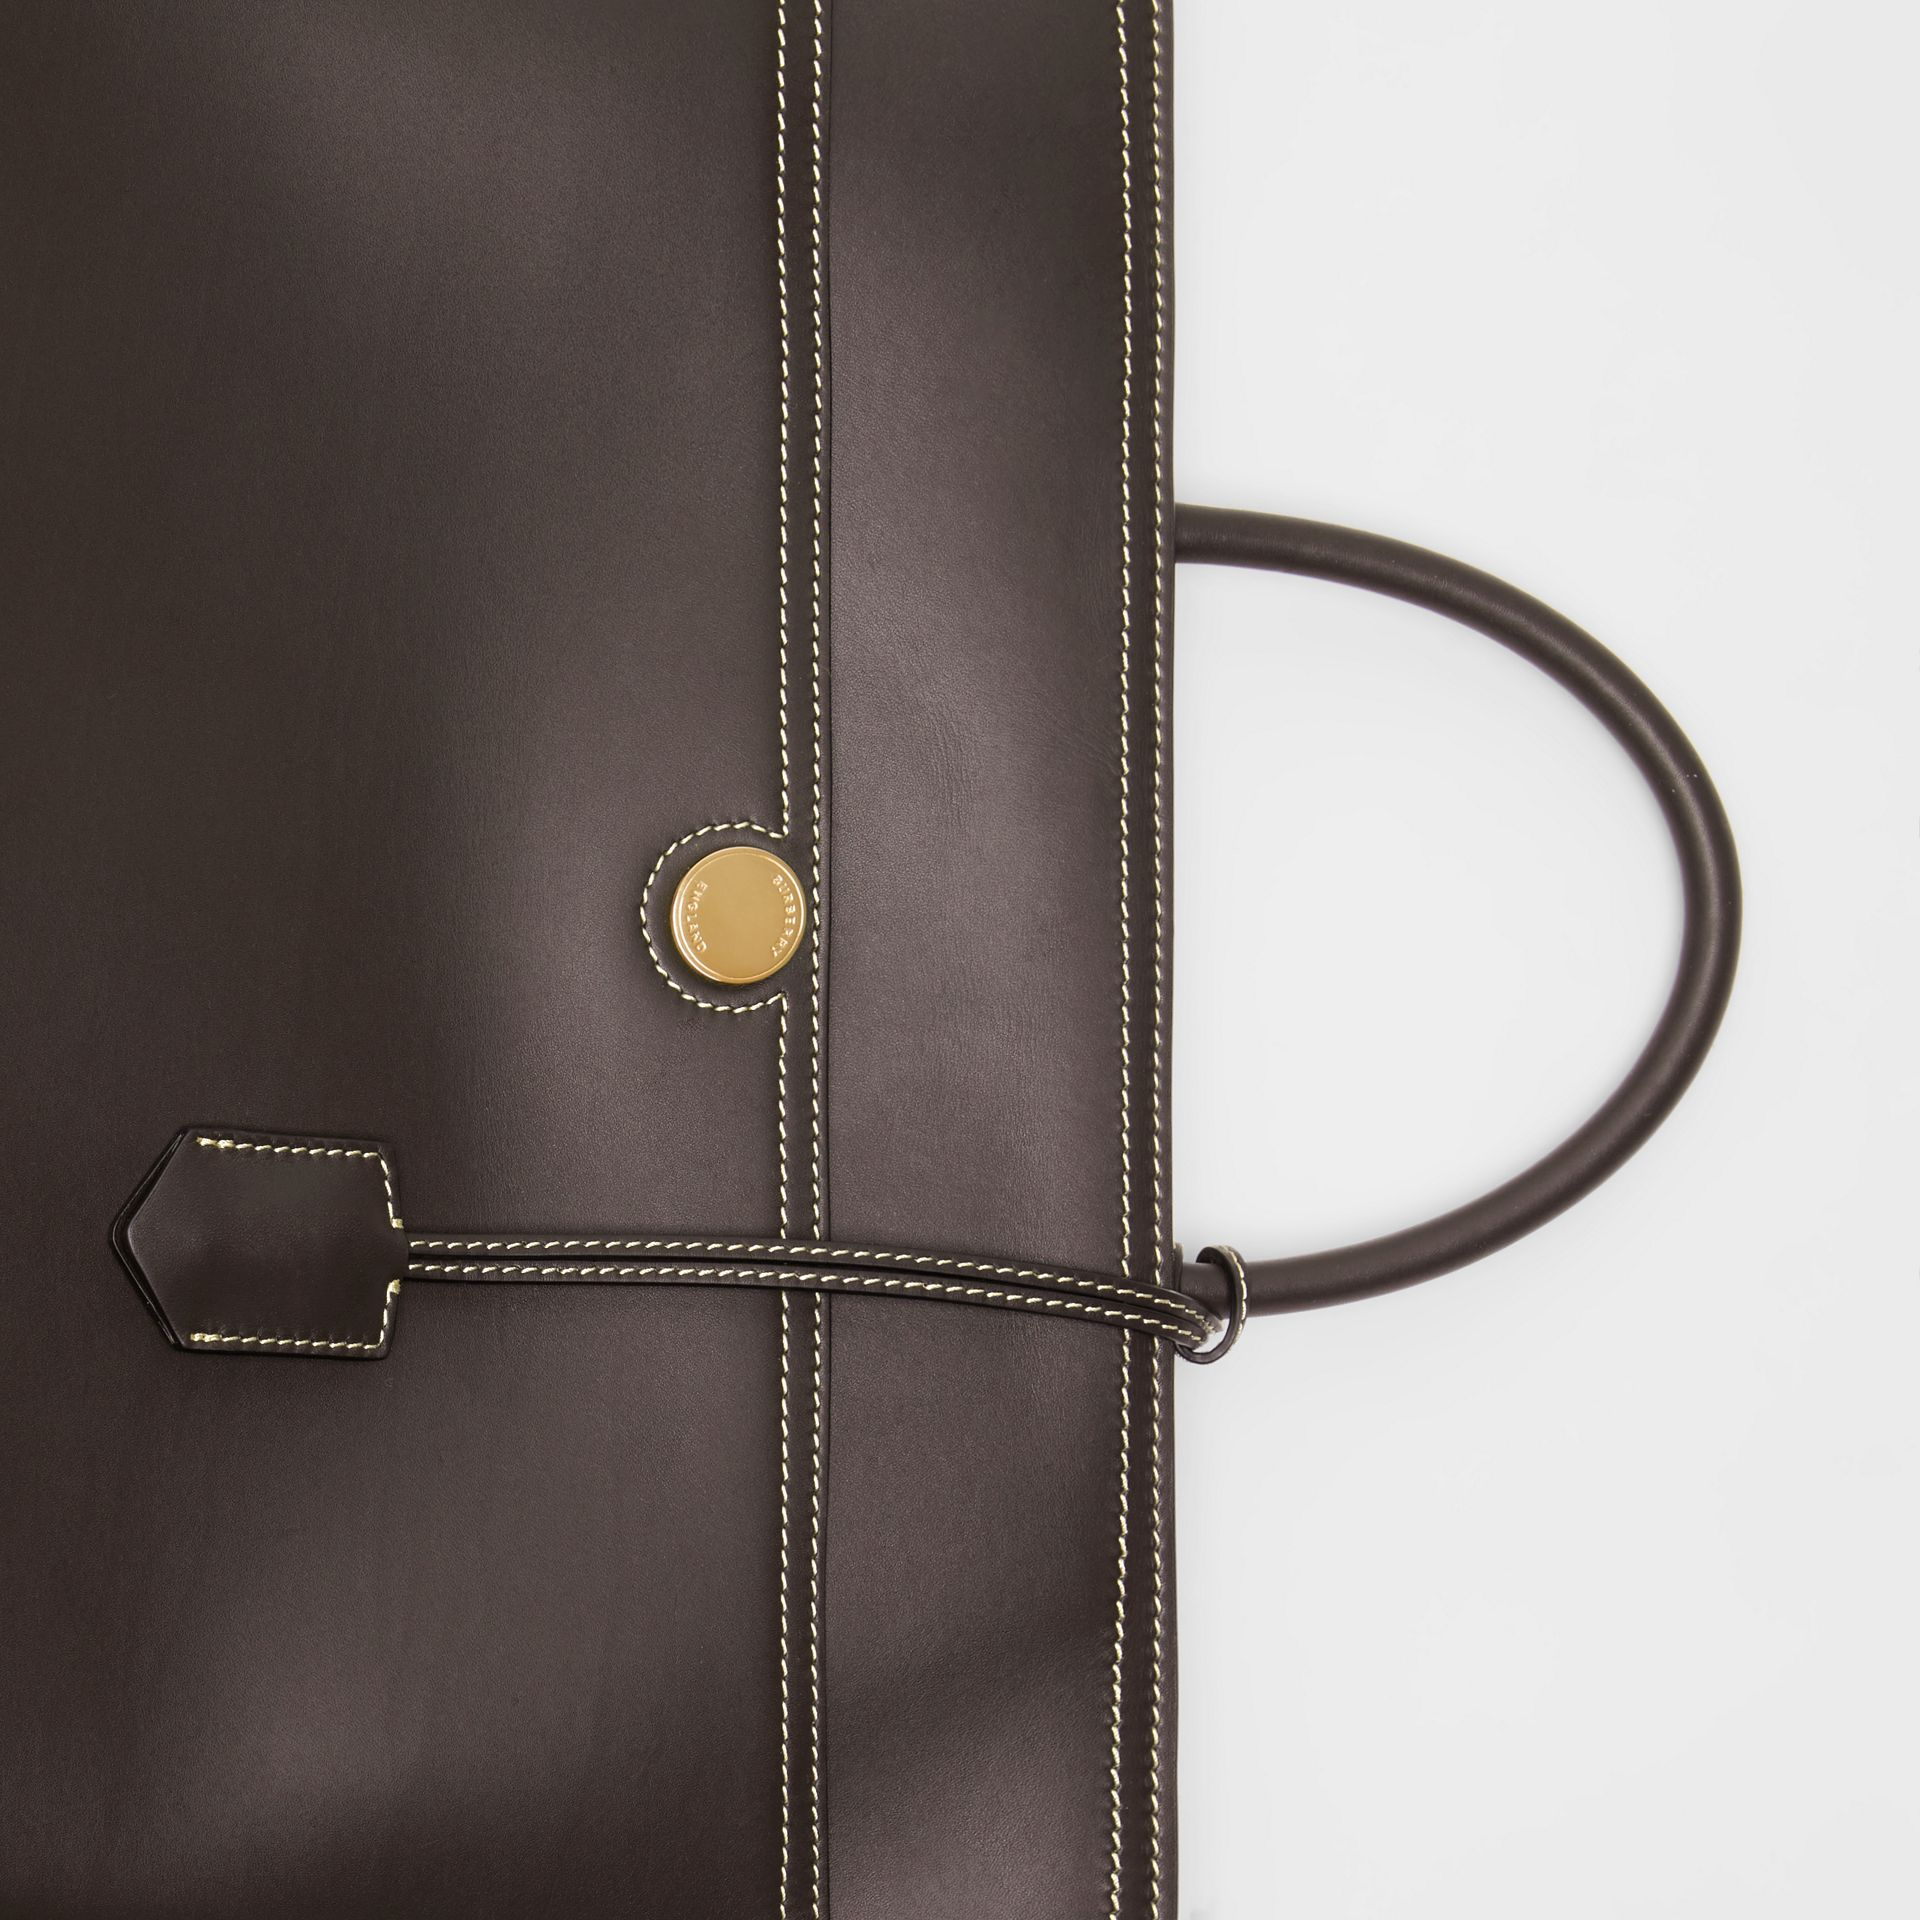 Leather Society Top Handle Bag in Coffee - Women | Burberry - gallery image 1